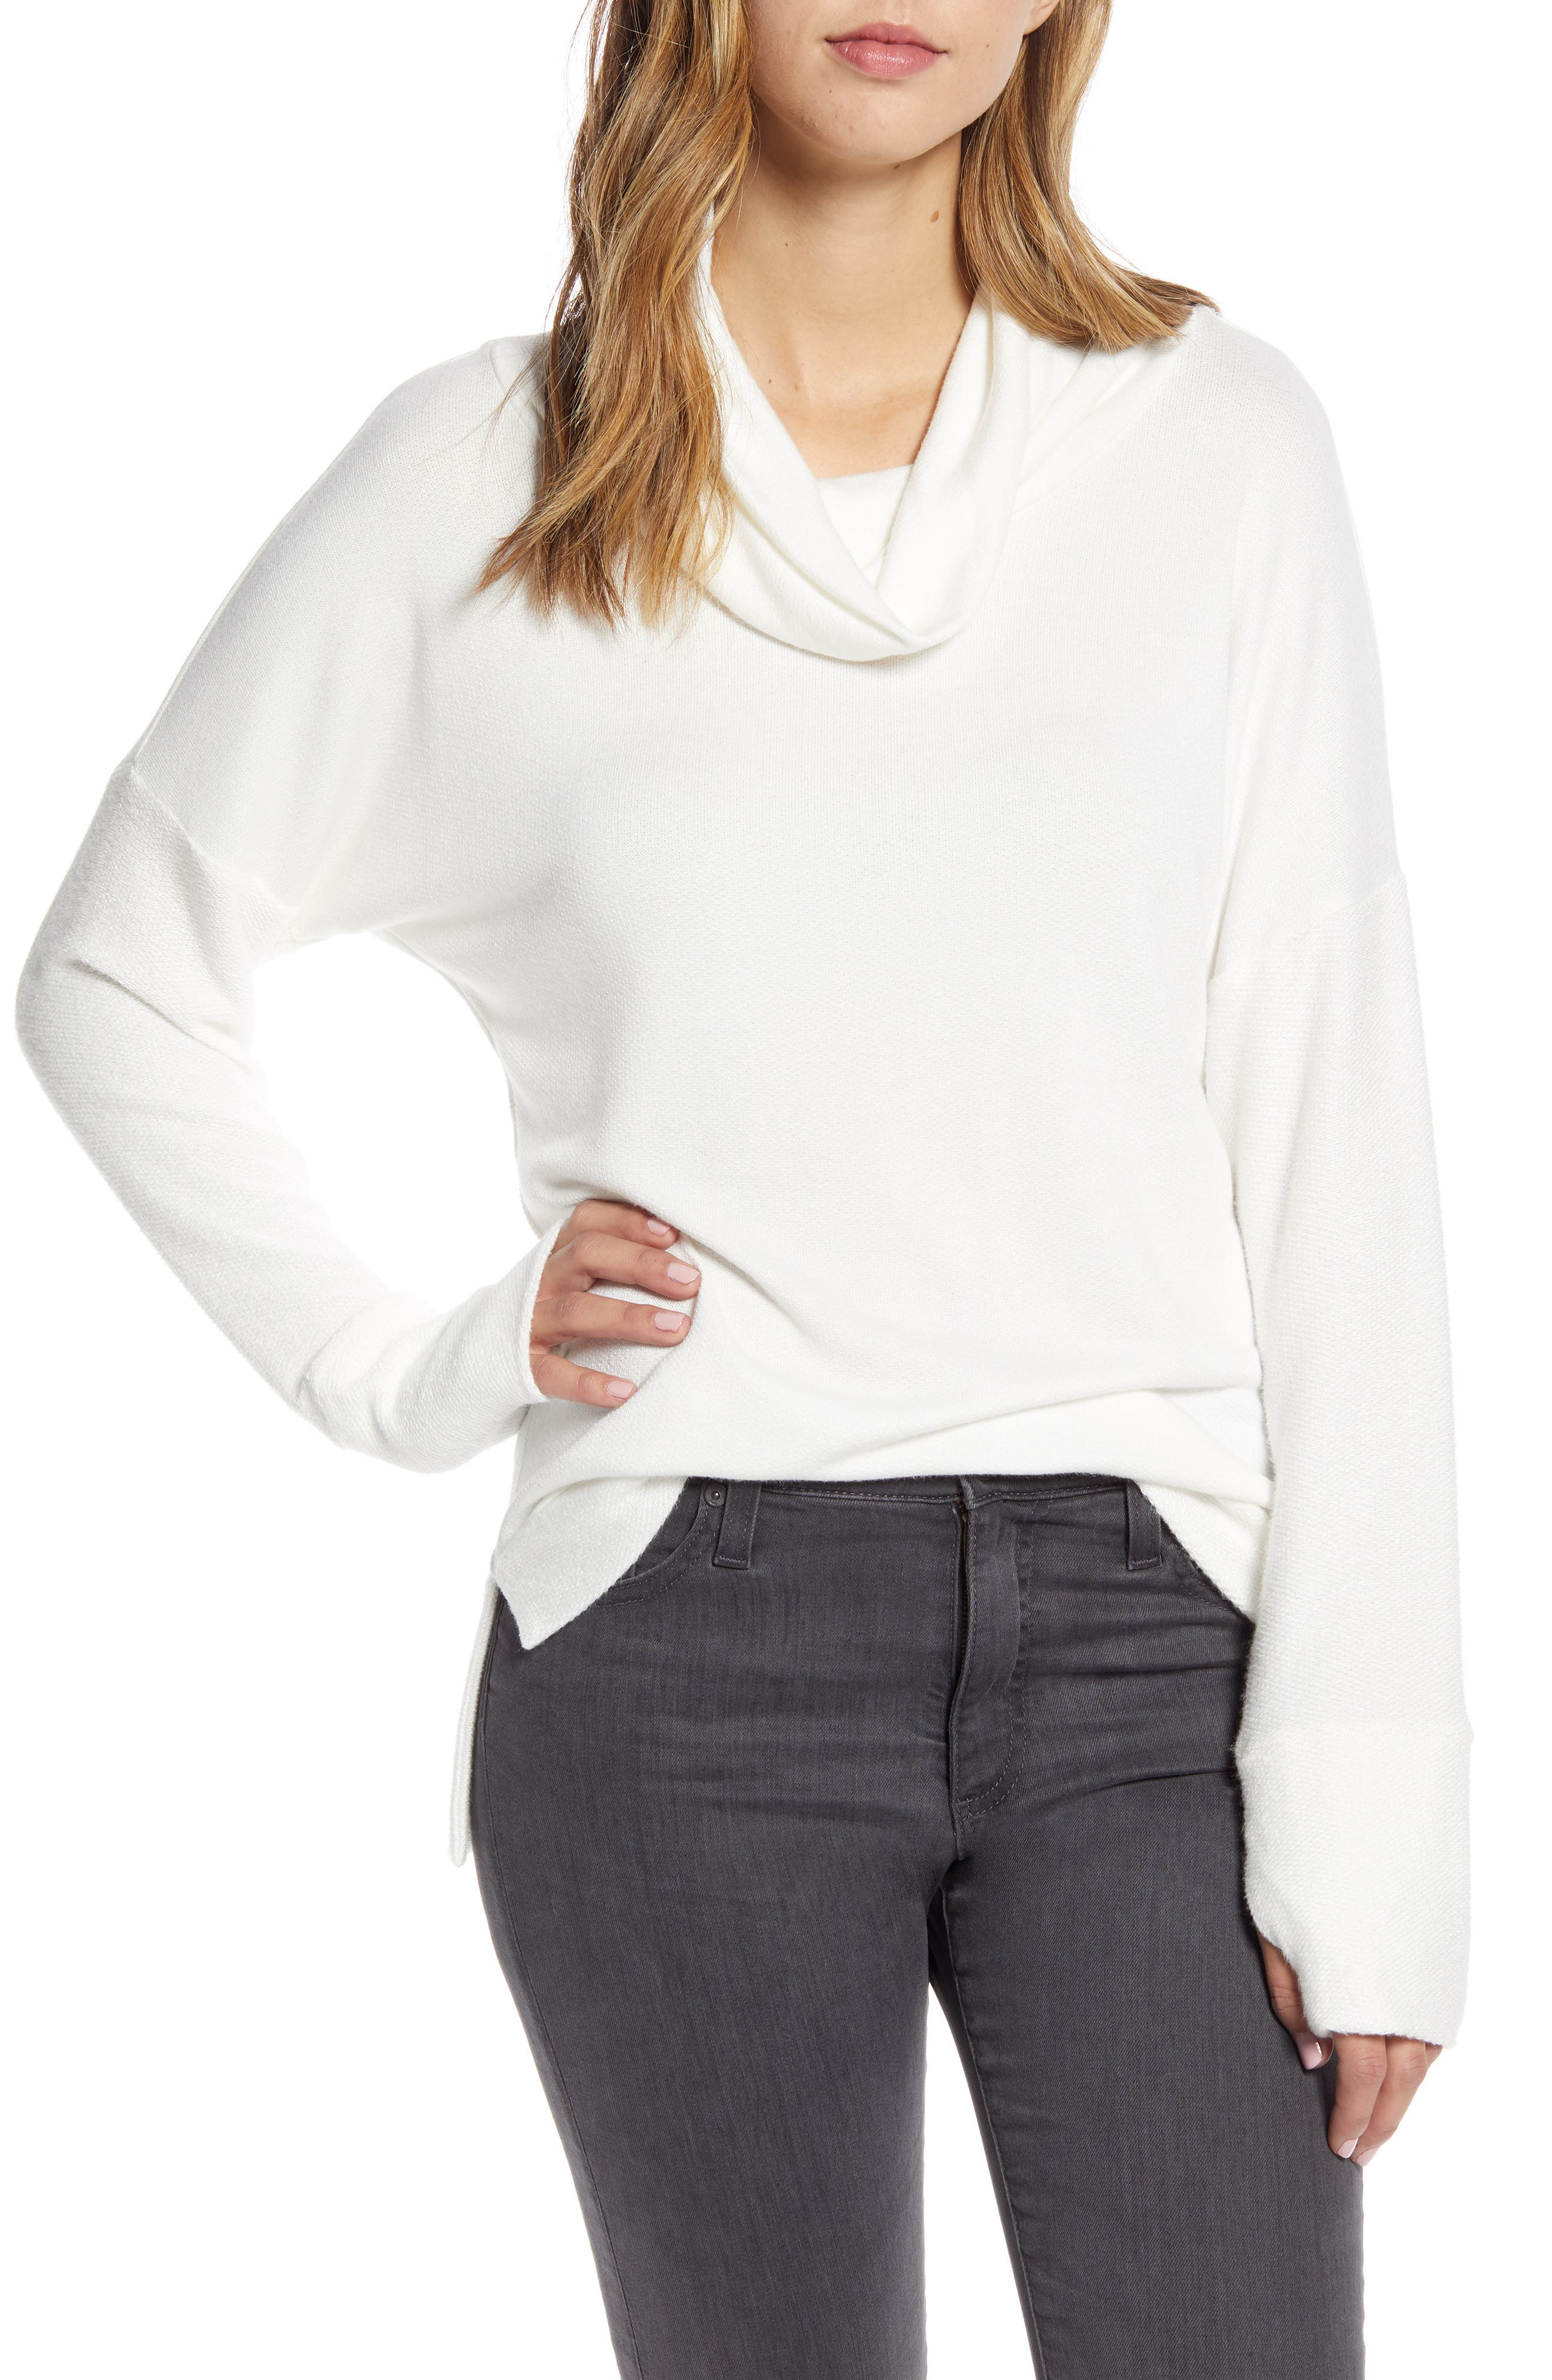 This soft off-duty sweater is designed with a slouchy cowl neck and contrasting thumbhole-cuff sleeves. Style Name: Loveappella Cowl French Terry Pullover. Style Number: 5942364. Available in stores.